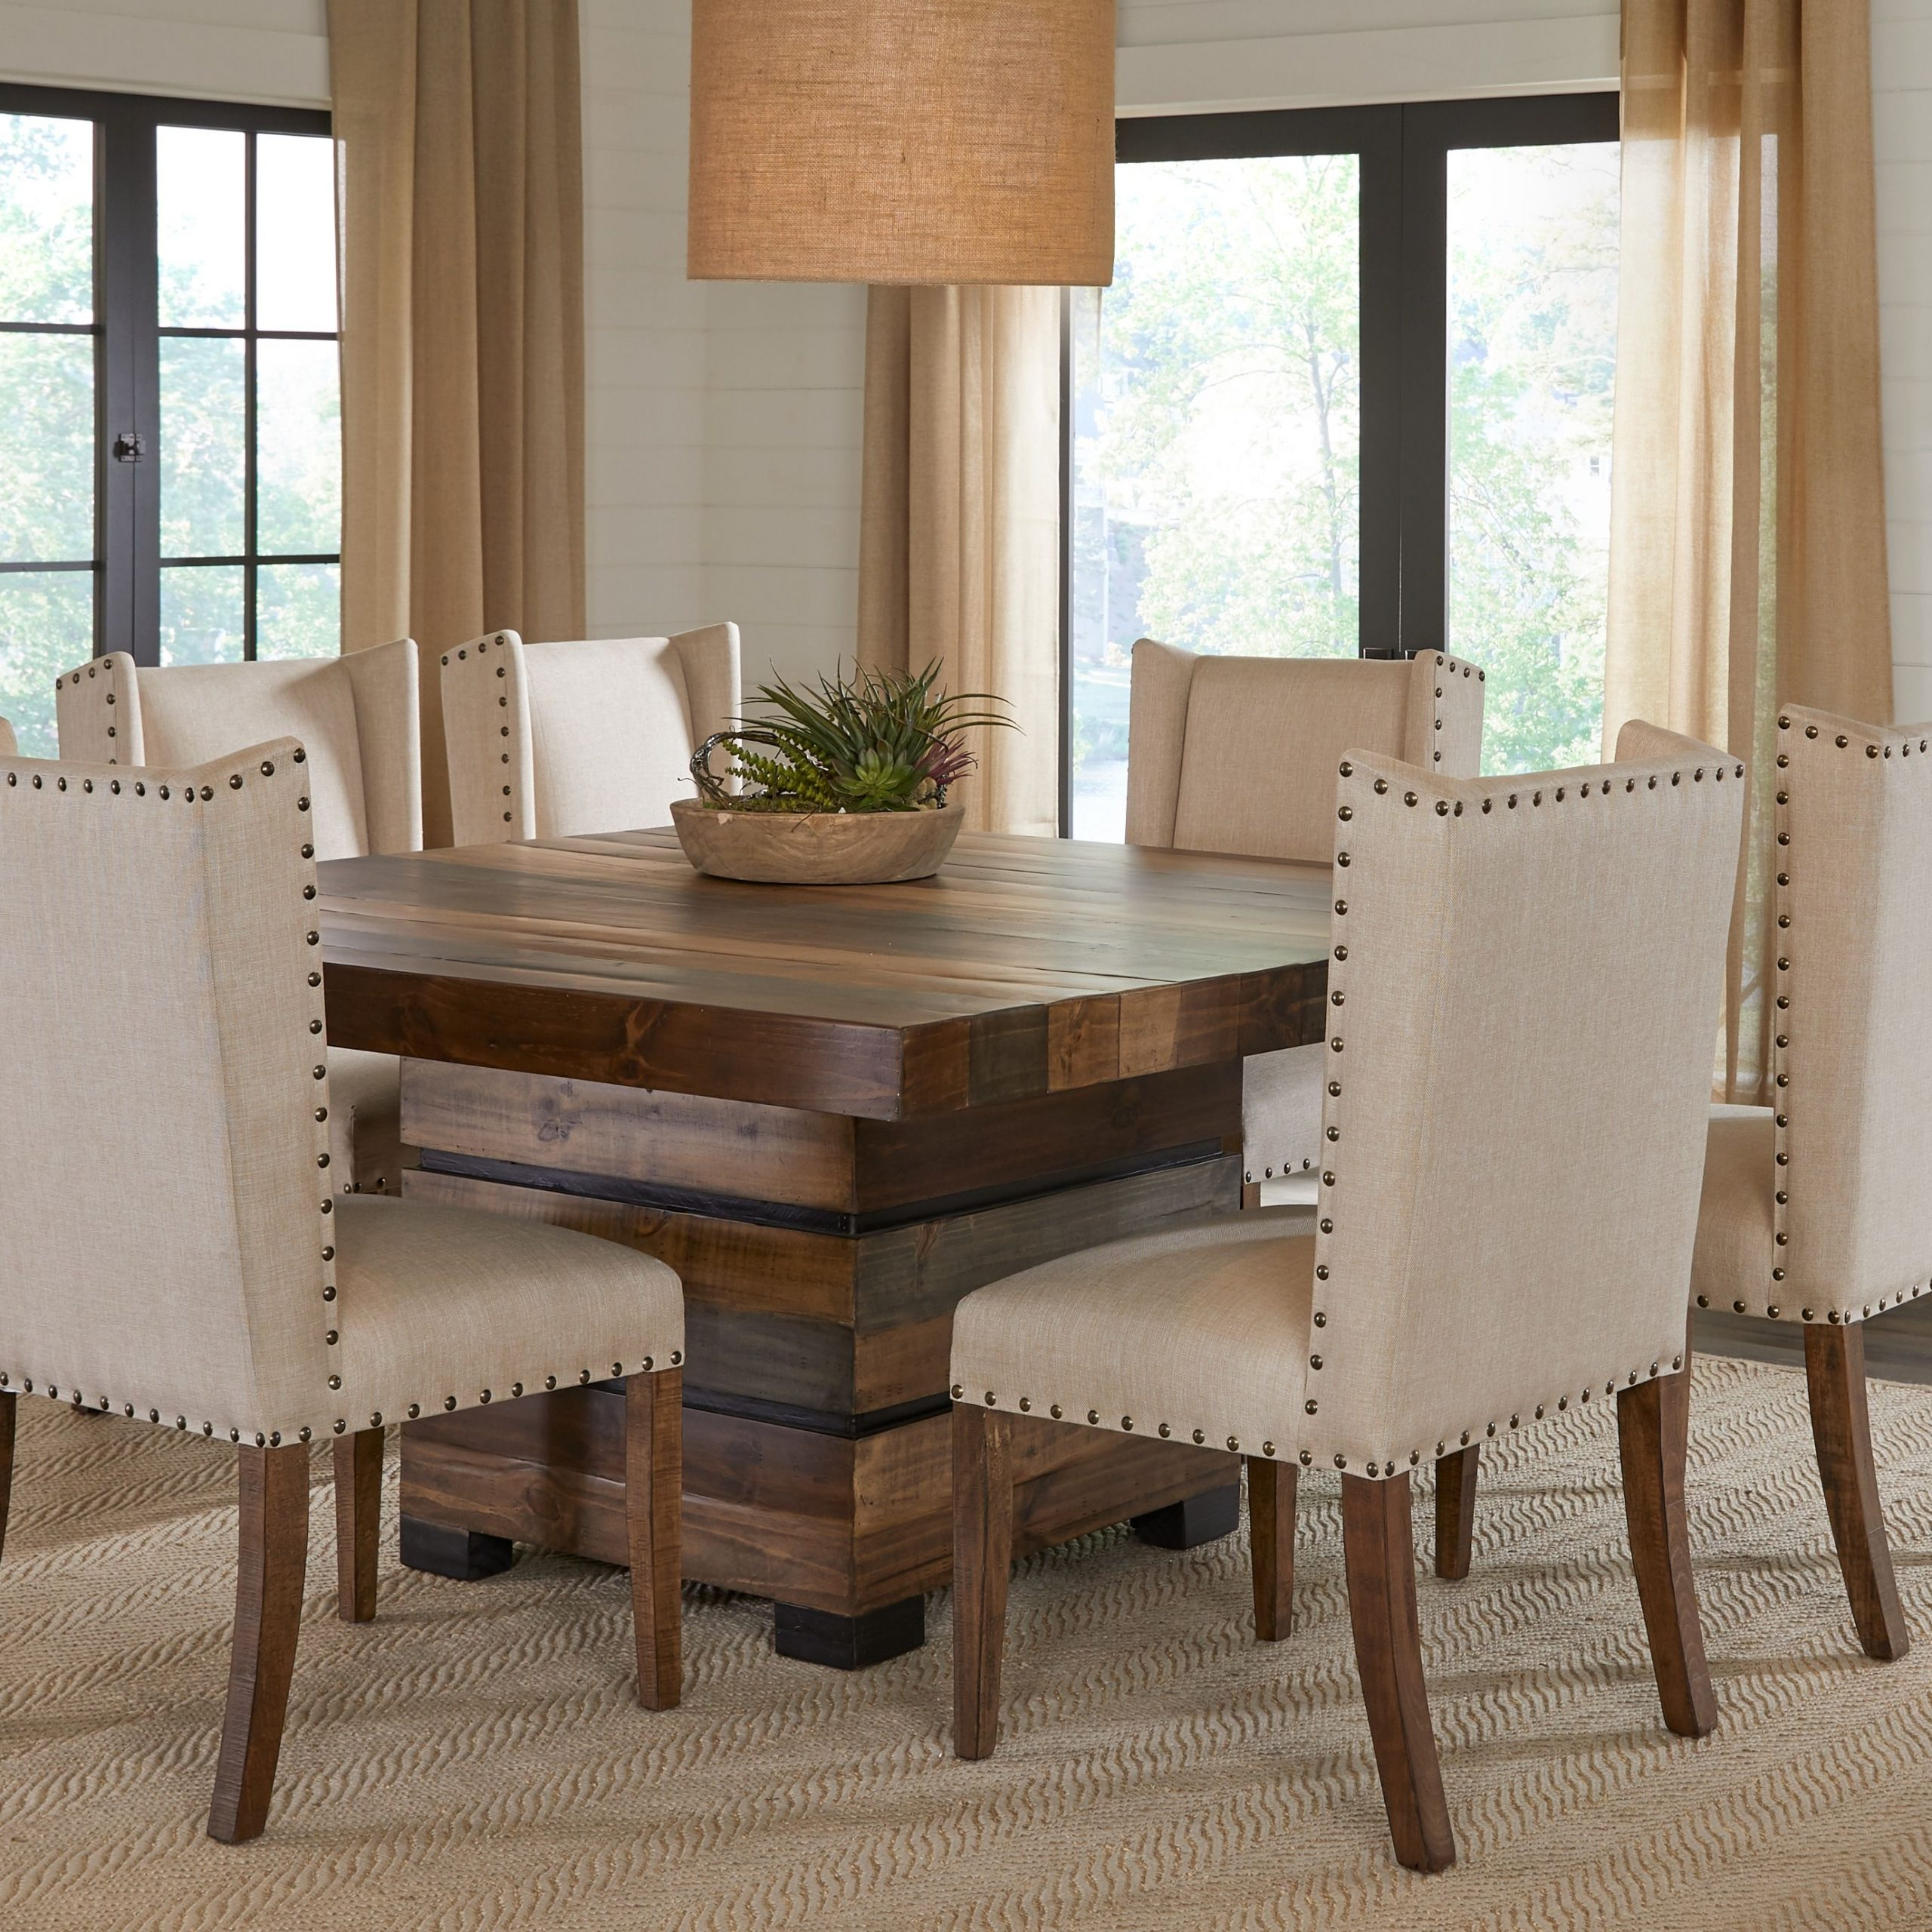 Most Recent Cindy Crawford Home Westover Hills Brown 5 Pc Square Dining In Bistro Transitional 4 Seating Square Dining Tables (View 10 of 24)